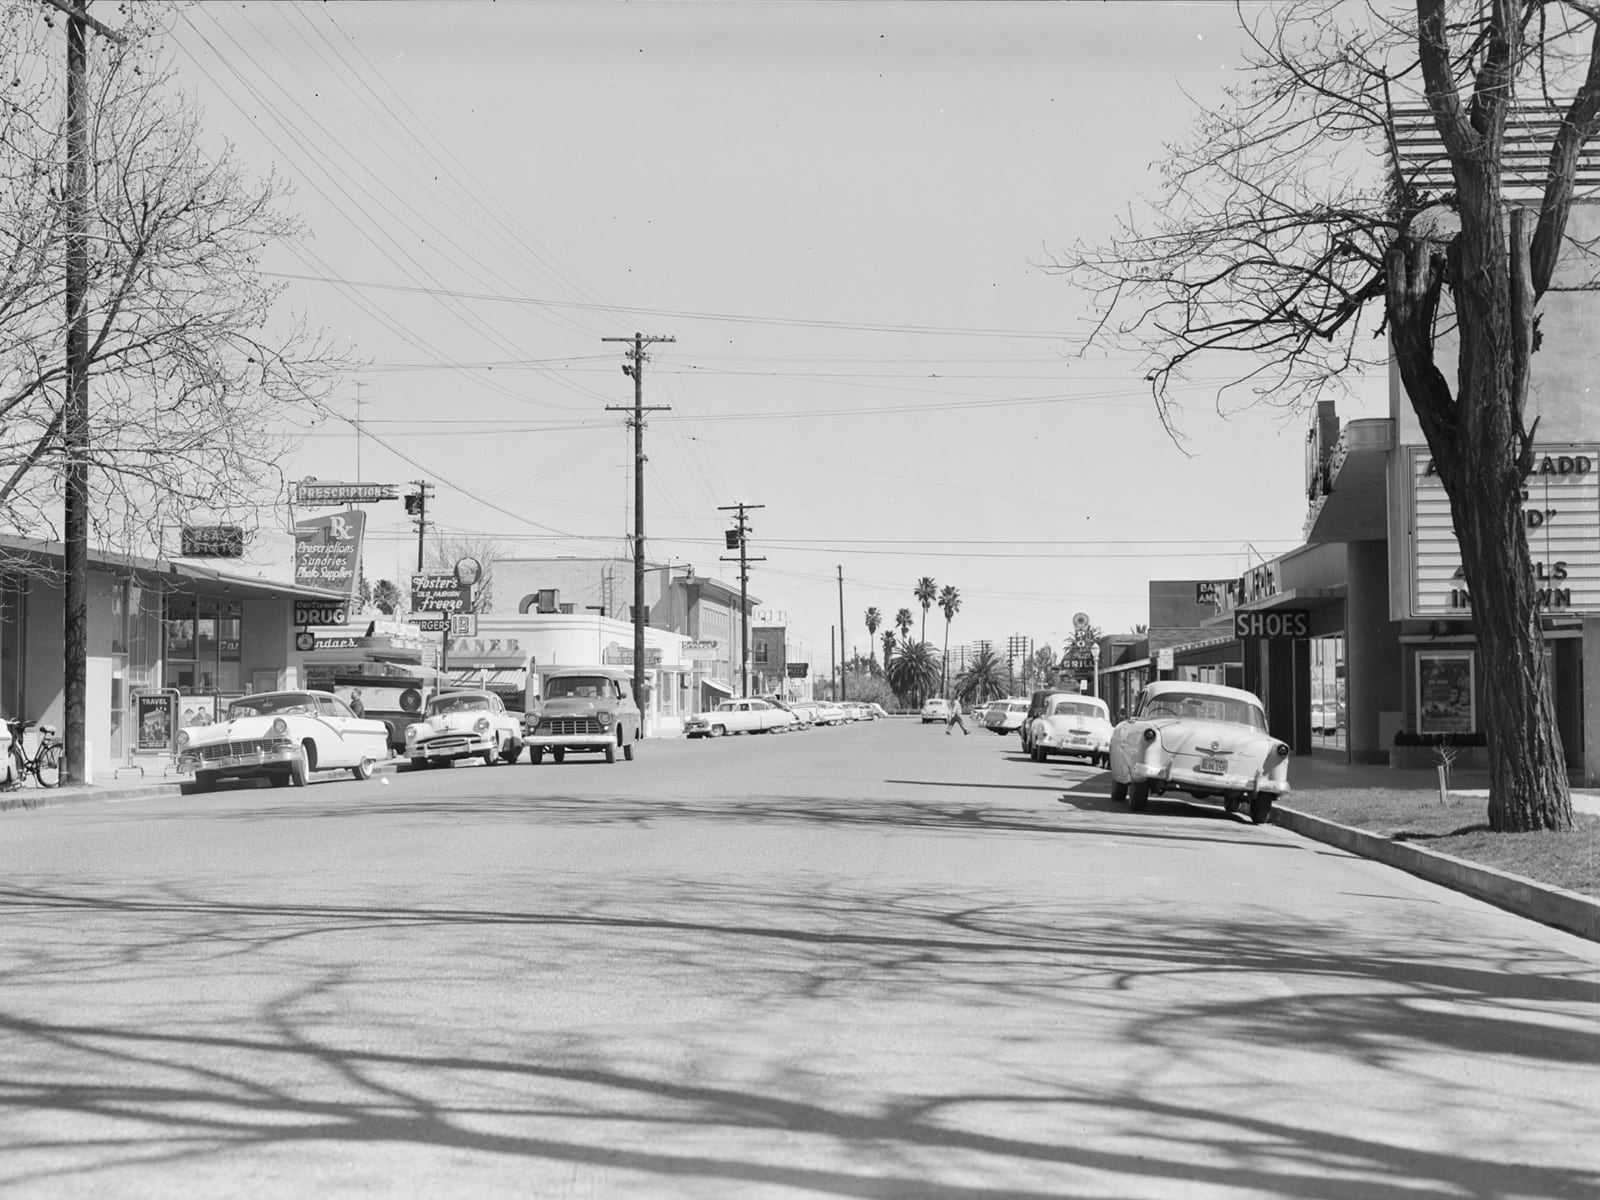 Second Street between E and F Streets, looking east, 1957